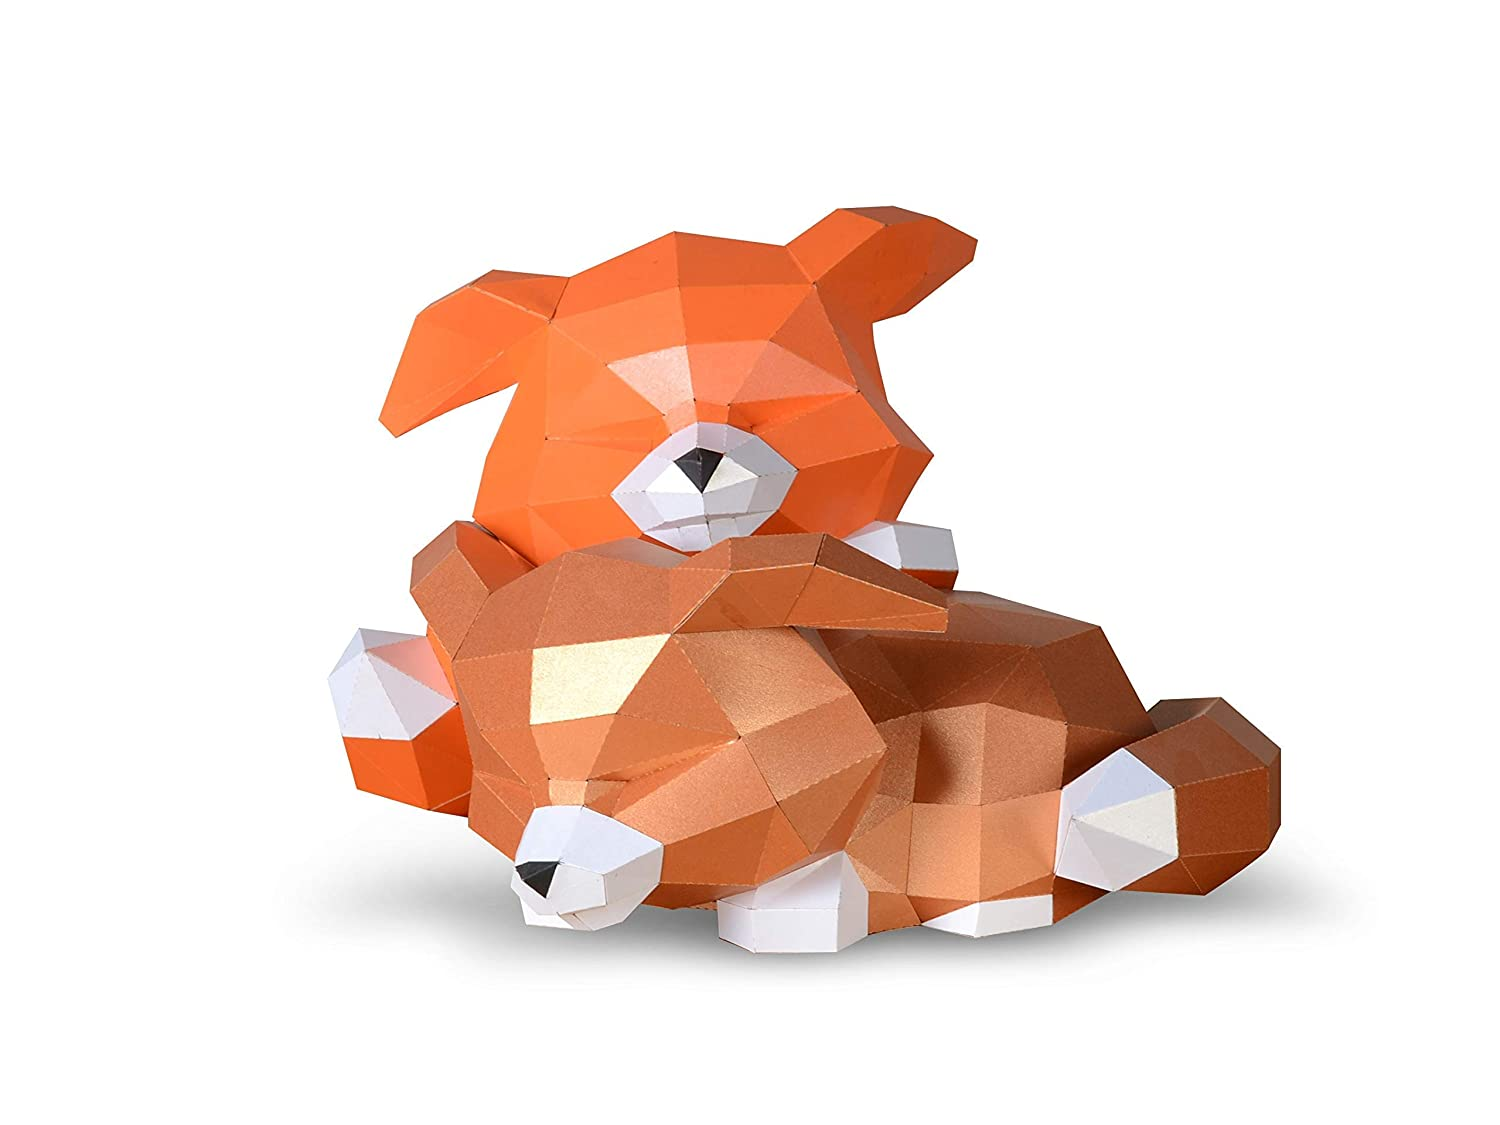 Sleep Little Fox DIY Paper Craft Kit,Pre Cut 3D Papercraft for decoration Creattive 3D Low Poly Puzzle for Kid,Multi Color Options,Accessories Included with Quality Paperstock ,100/% Recycled